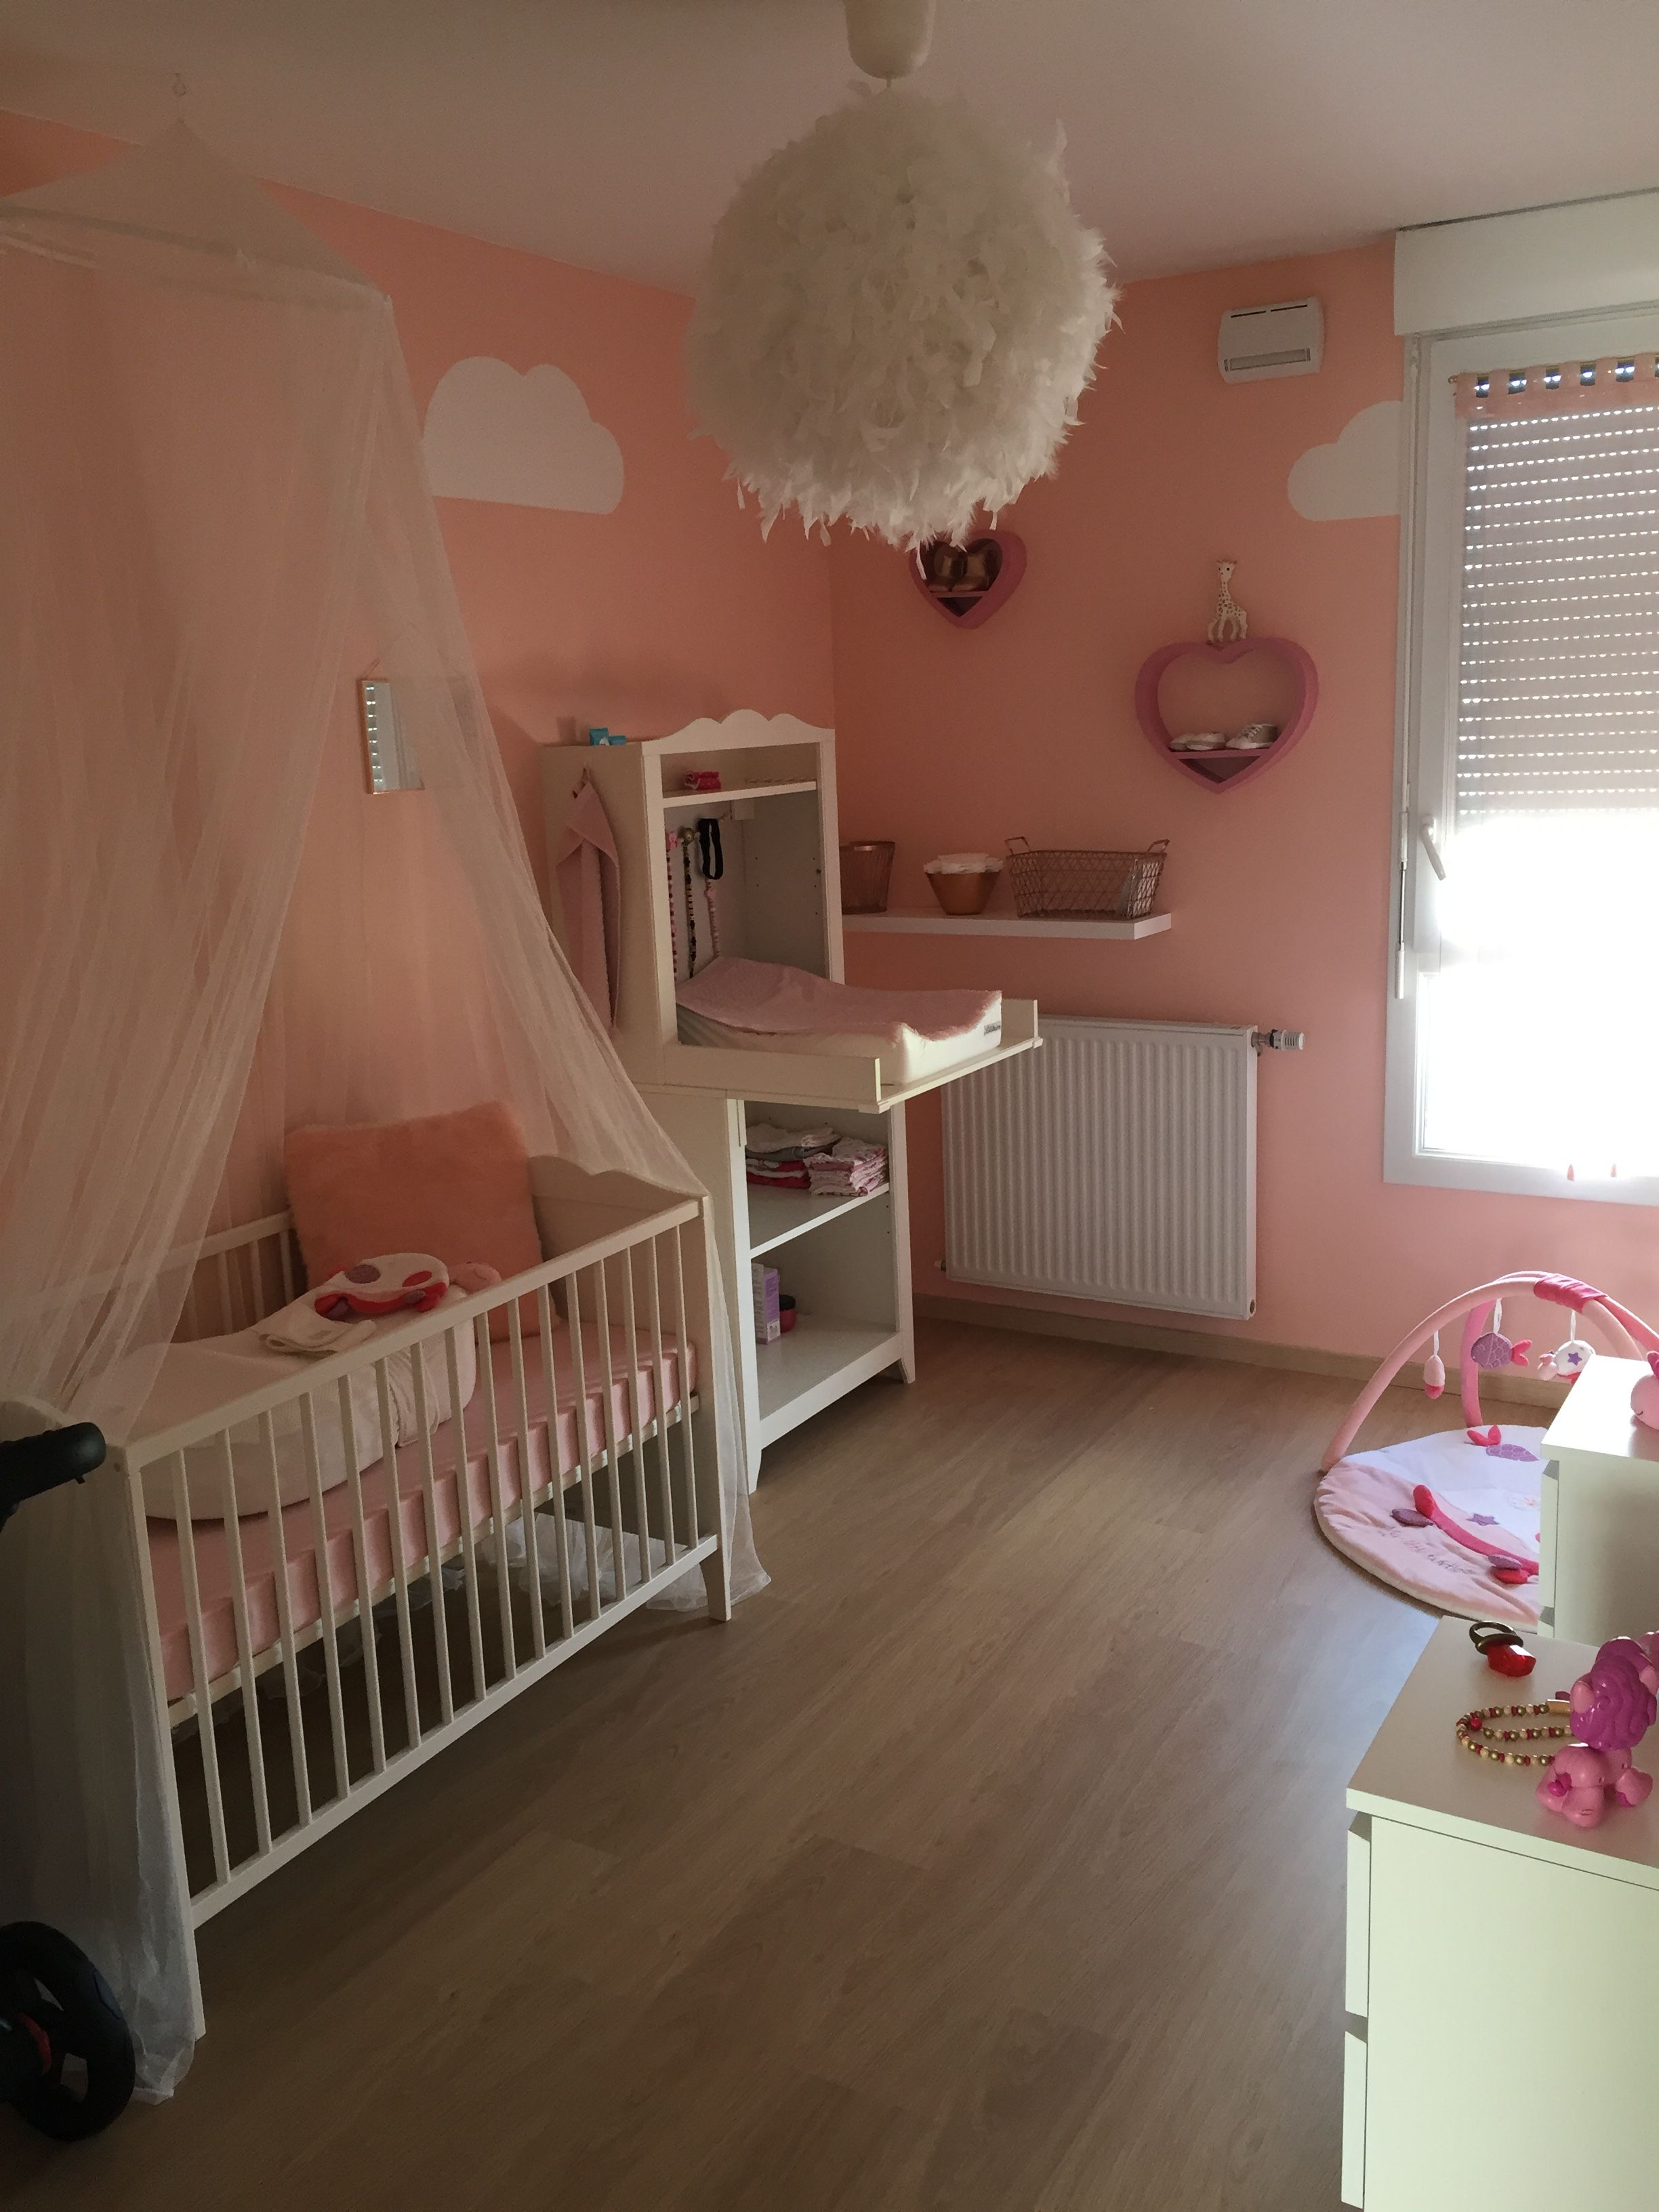 Cute Chambre Rose chamallow Th me nuage Mobilier Ikea Accessoires Sauthon collection Tess